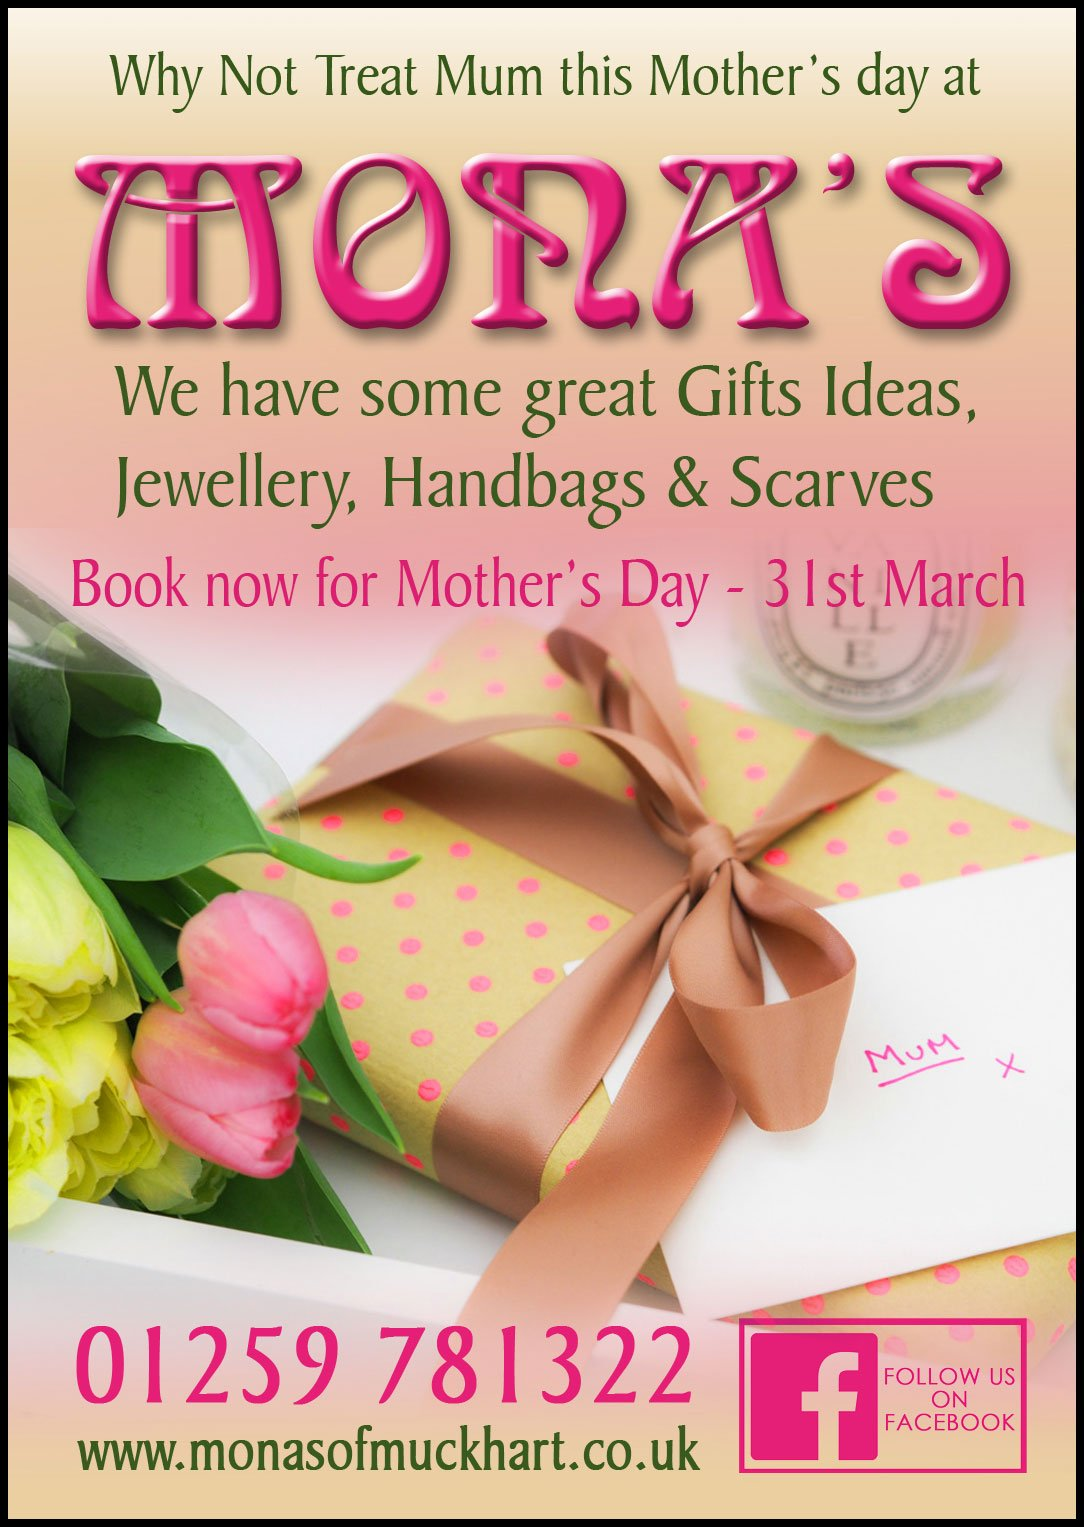 Why not treat Mum this Mother's Day at Mona's of Muckhart